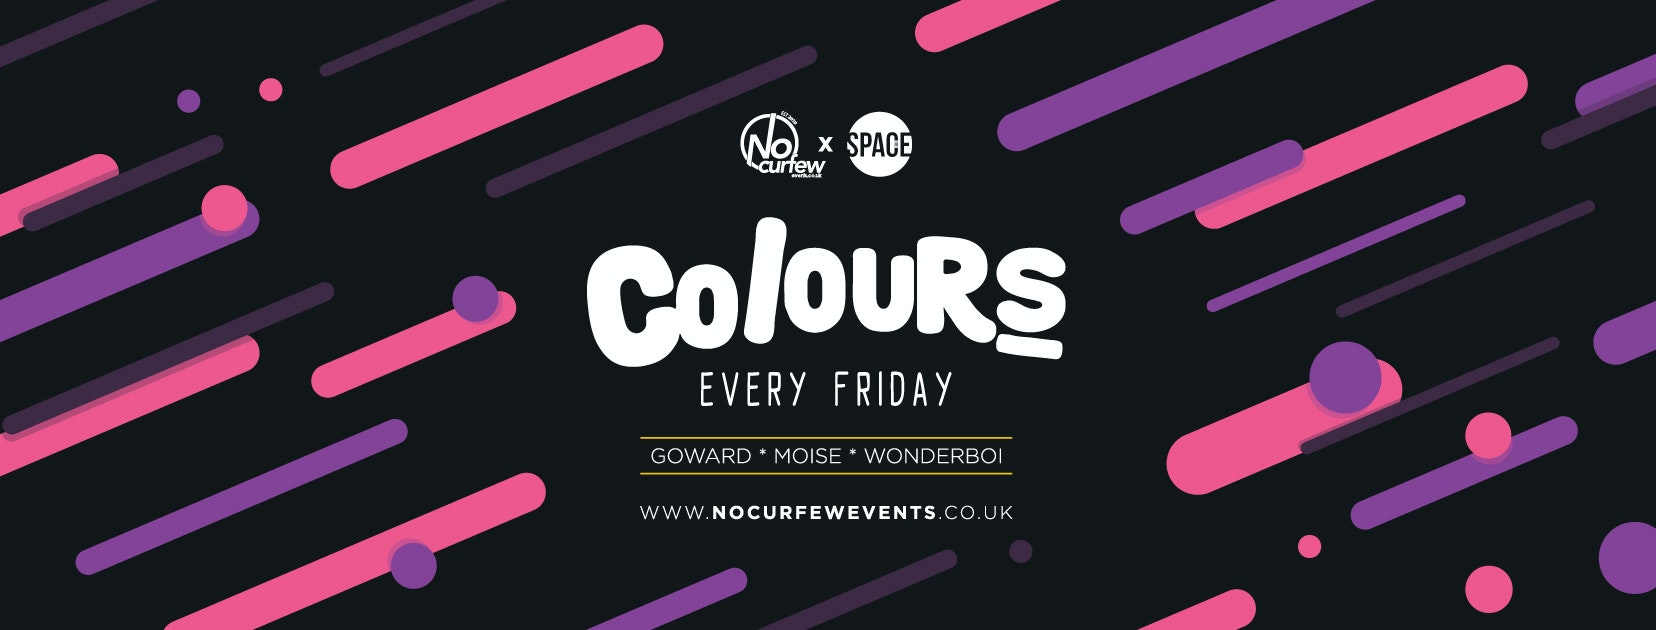 Colours Leeds at Space :: Every Friday :: £1 Drinks